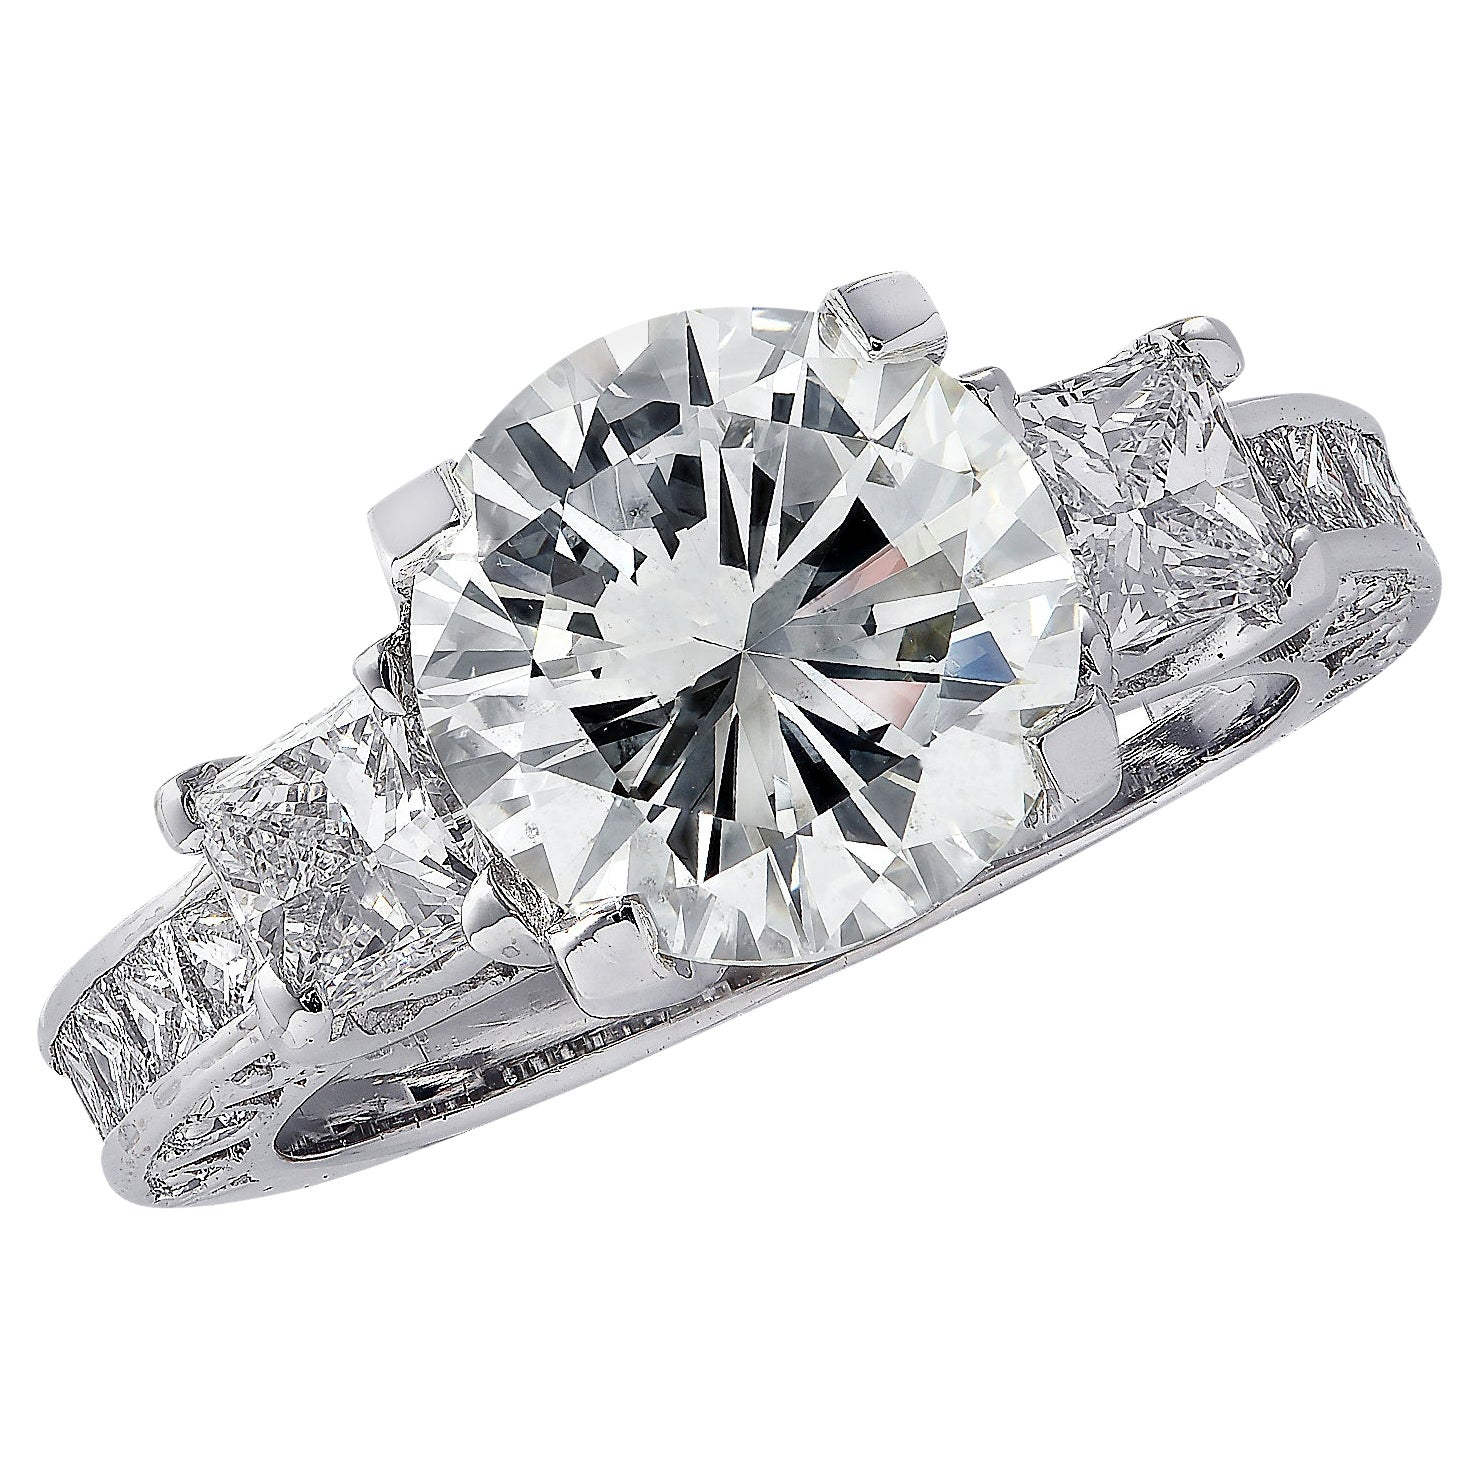 Vivid Diamonds GIA Certified 3.03 Carat Diamond Engagement Ring